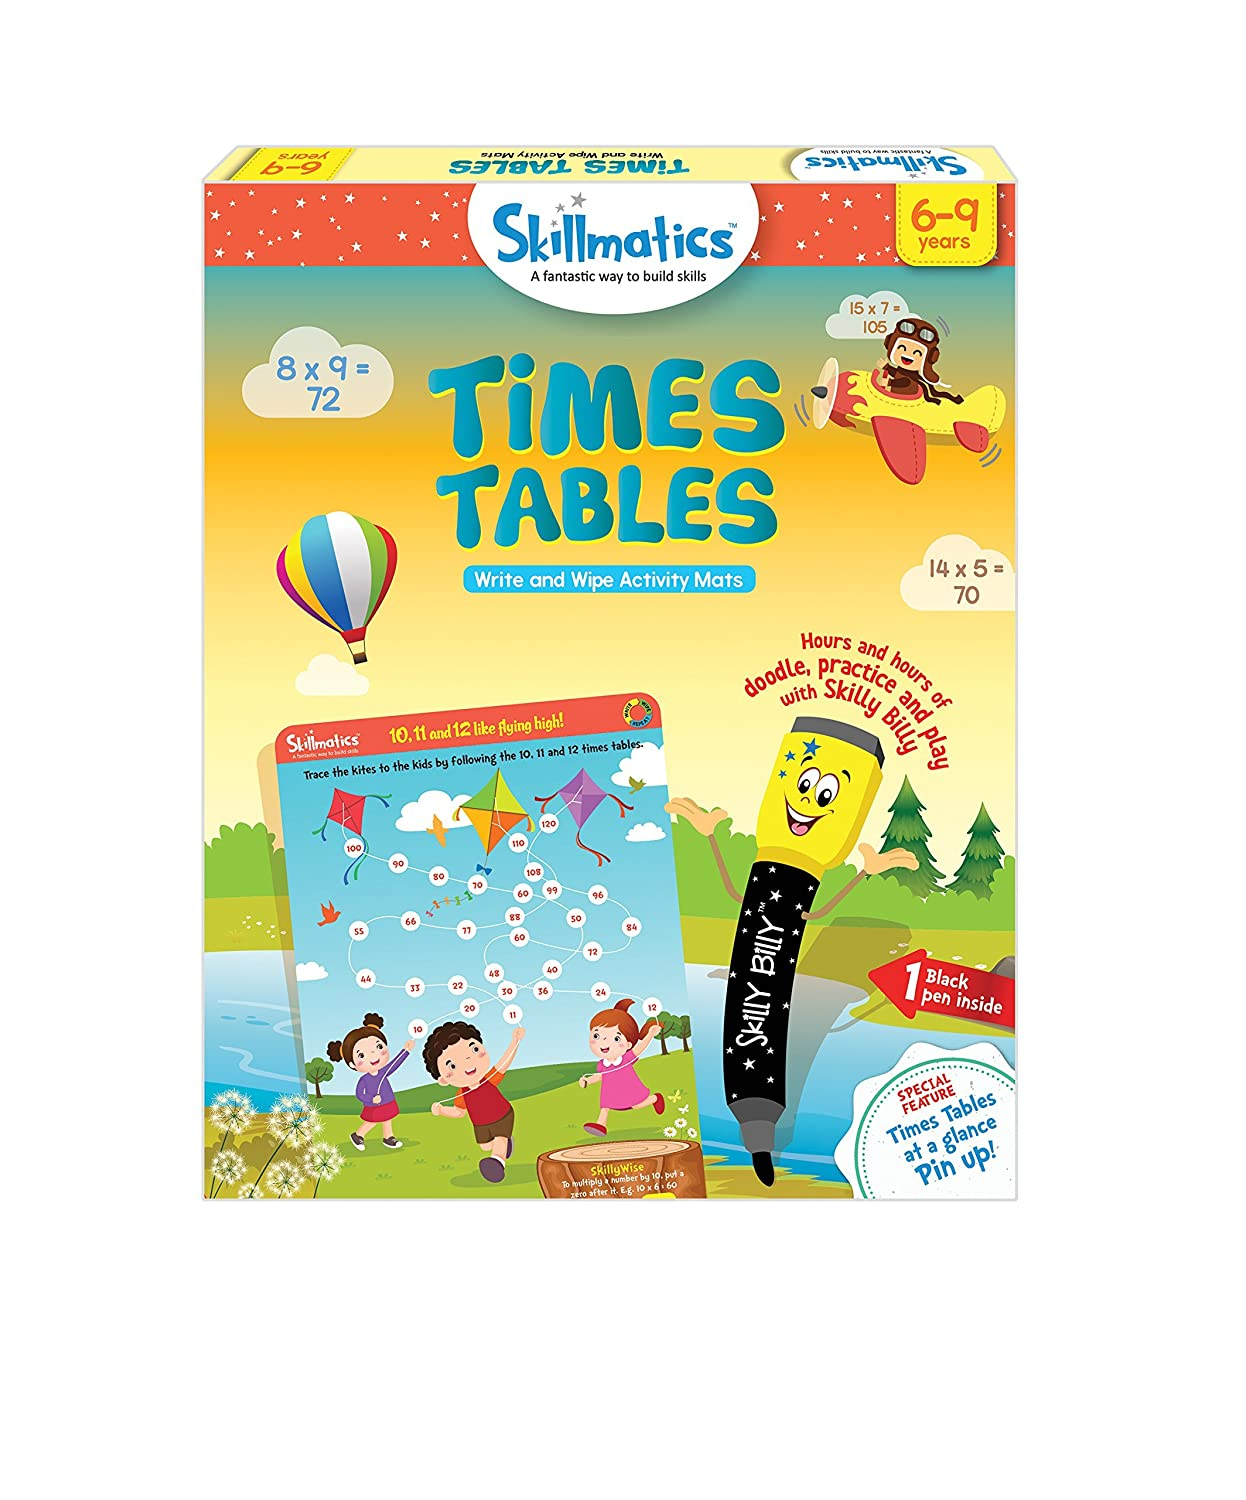 Skillmatics Fun Learning Times Tables 6-9 Years  STEM Learning   Creative Fun Activities Gift Boys Girls Kids Ages 6 to 9 Years Parksons Packaging Limited